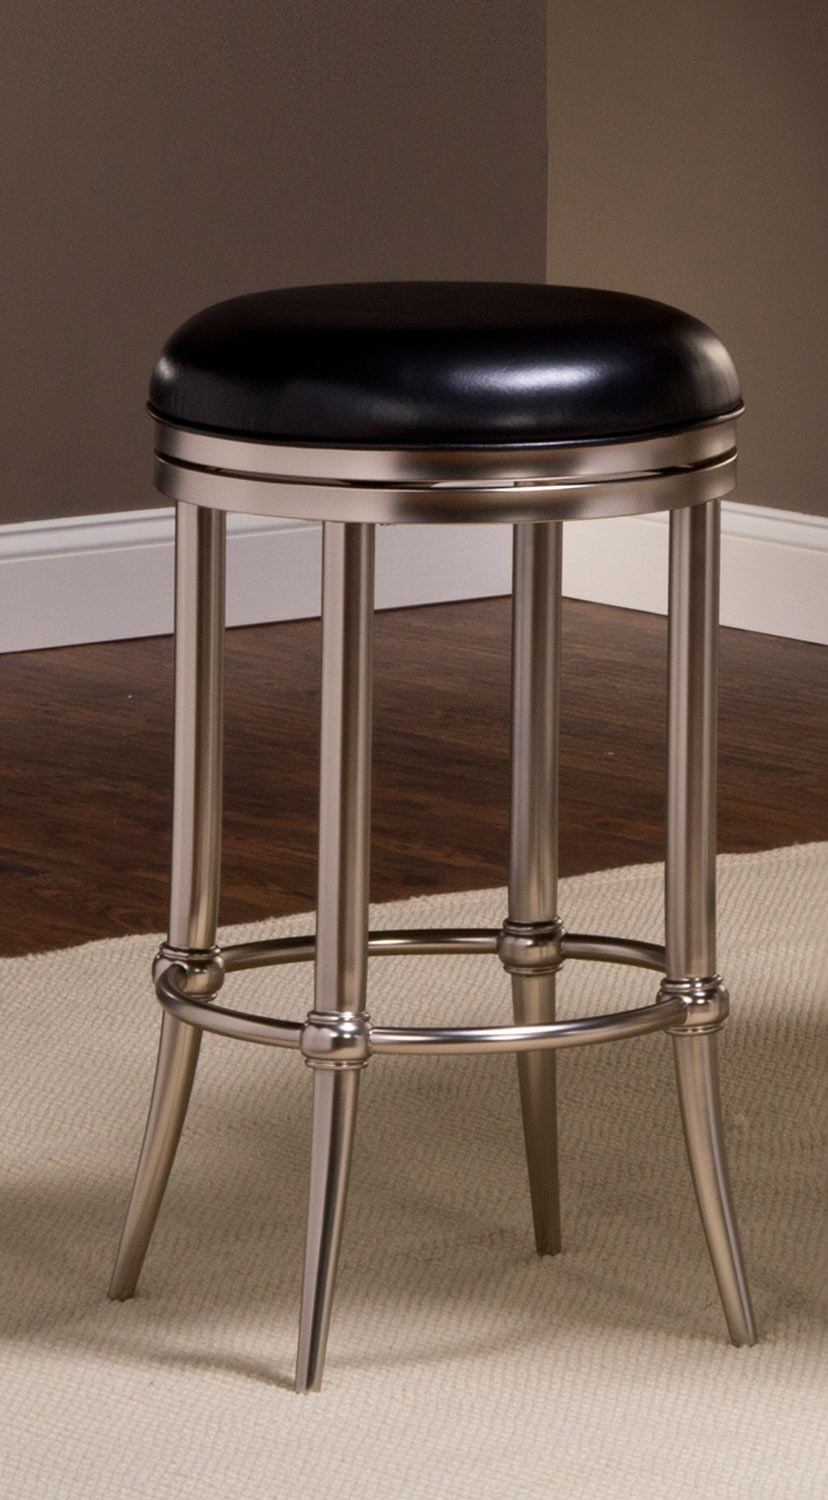 Hillsdale Cadman Backless Bar Stool Black Vinyl Dull Nickel With Images Bar Stools Backless Bar Stools Stool